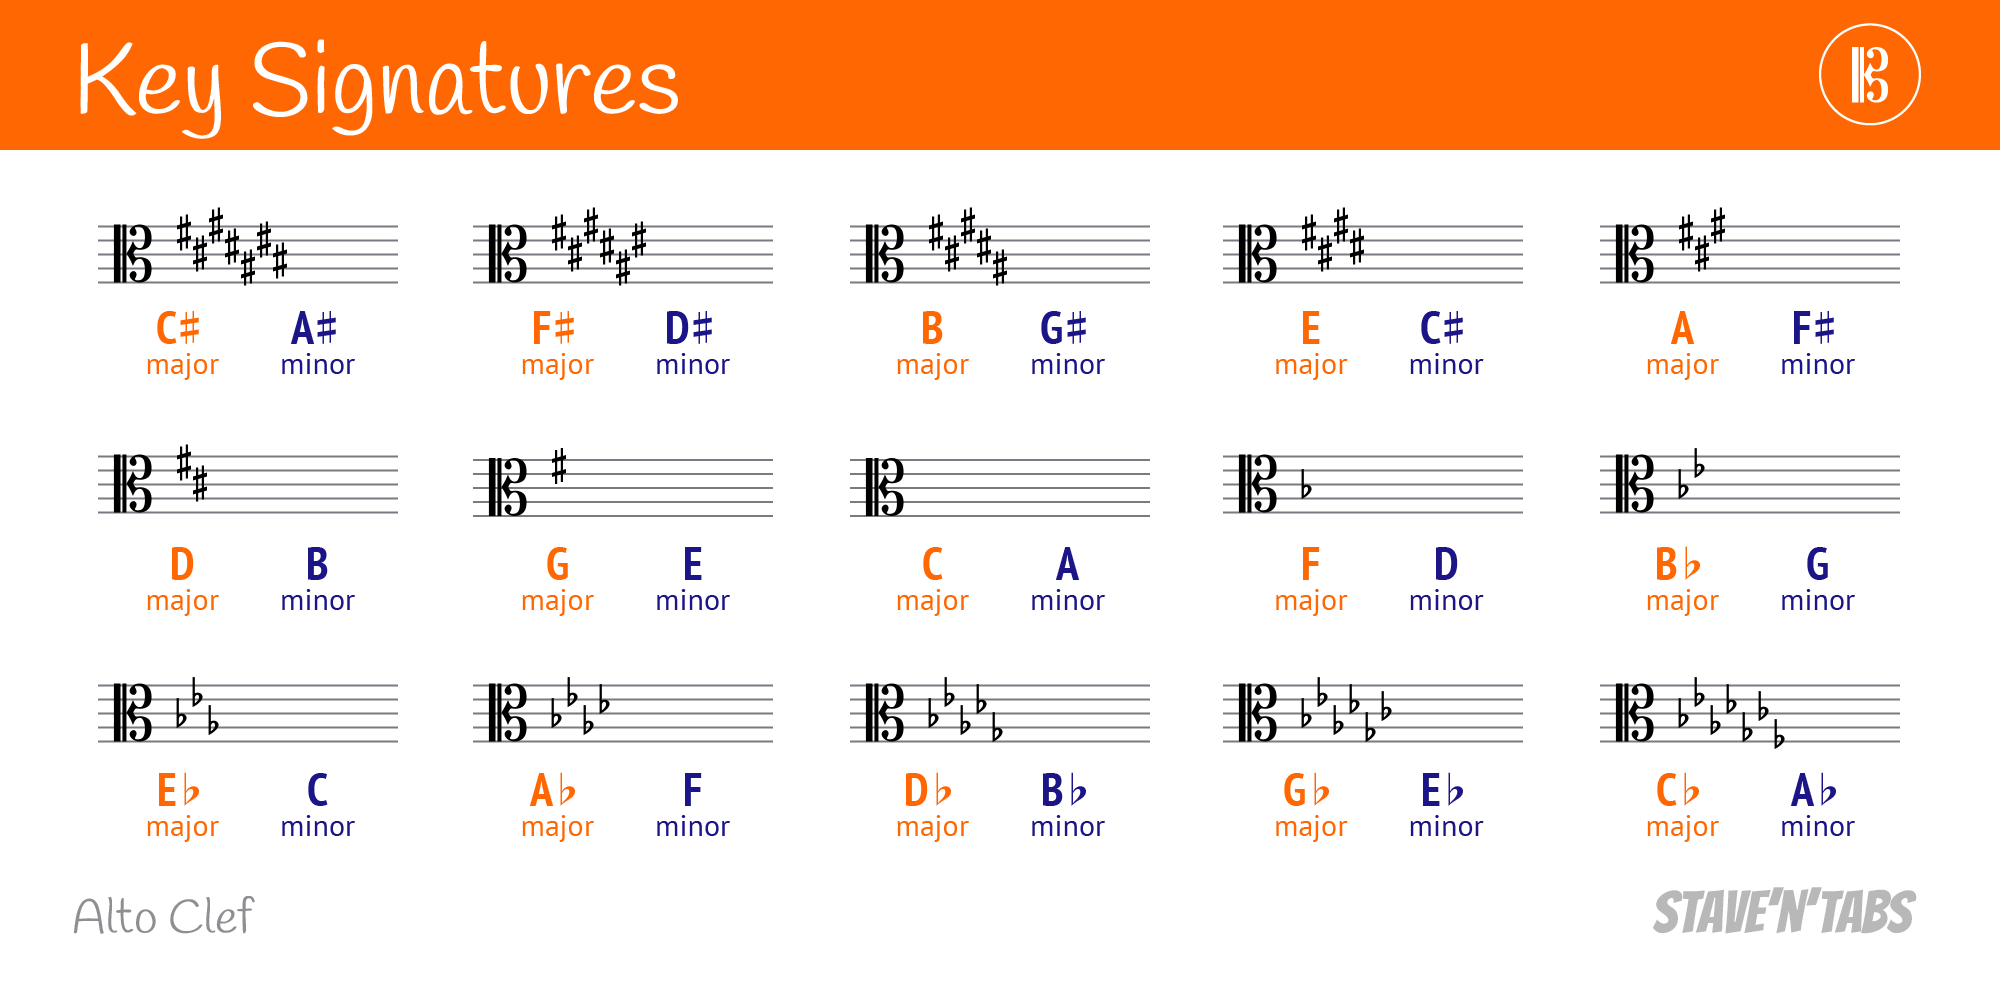 Key signatures in alto clef